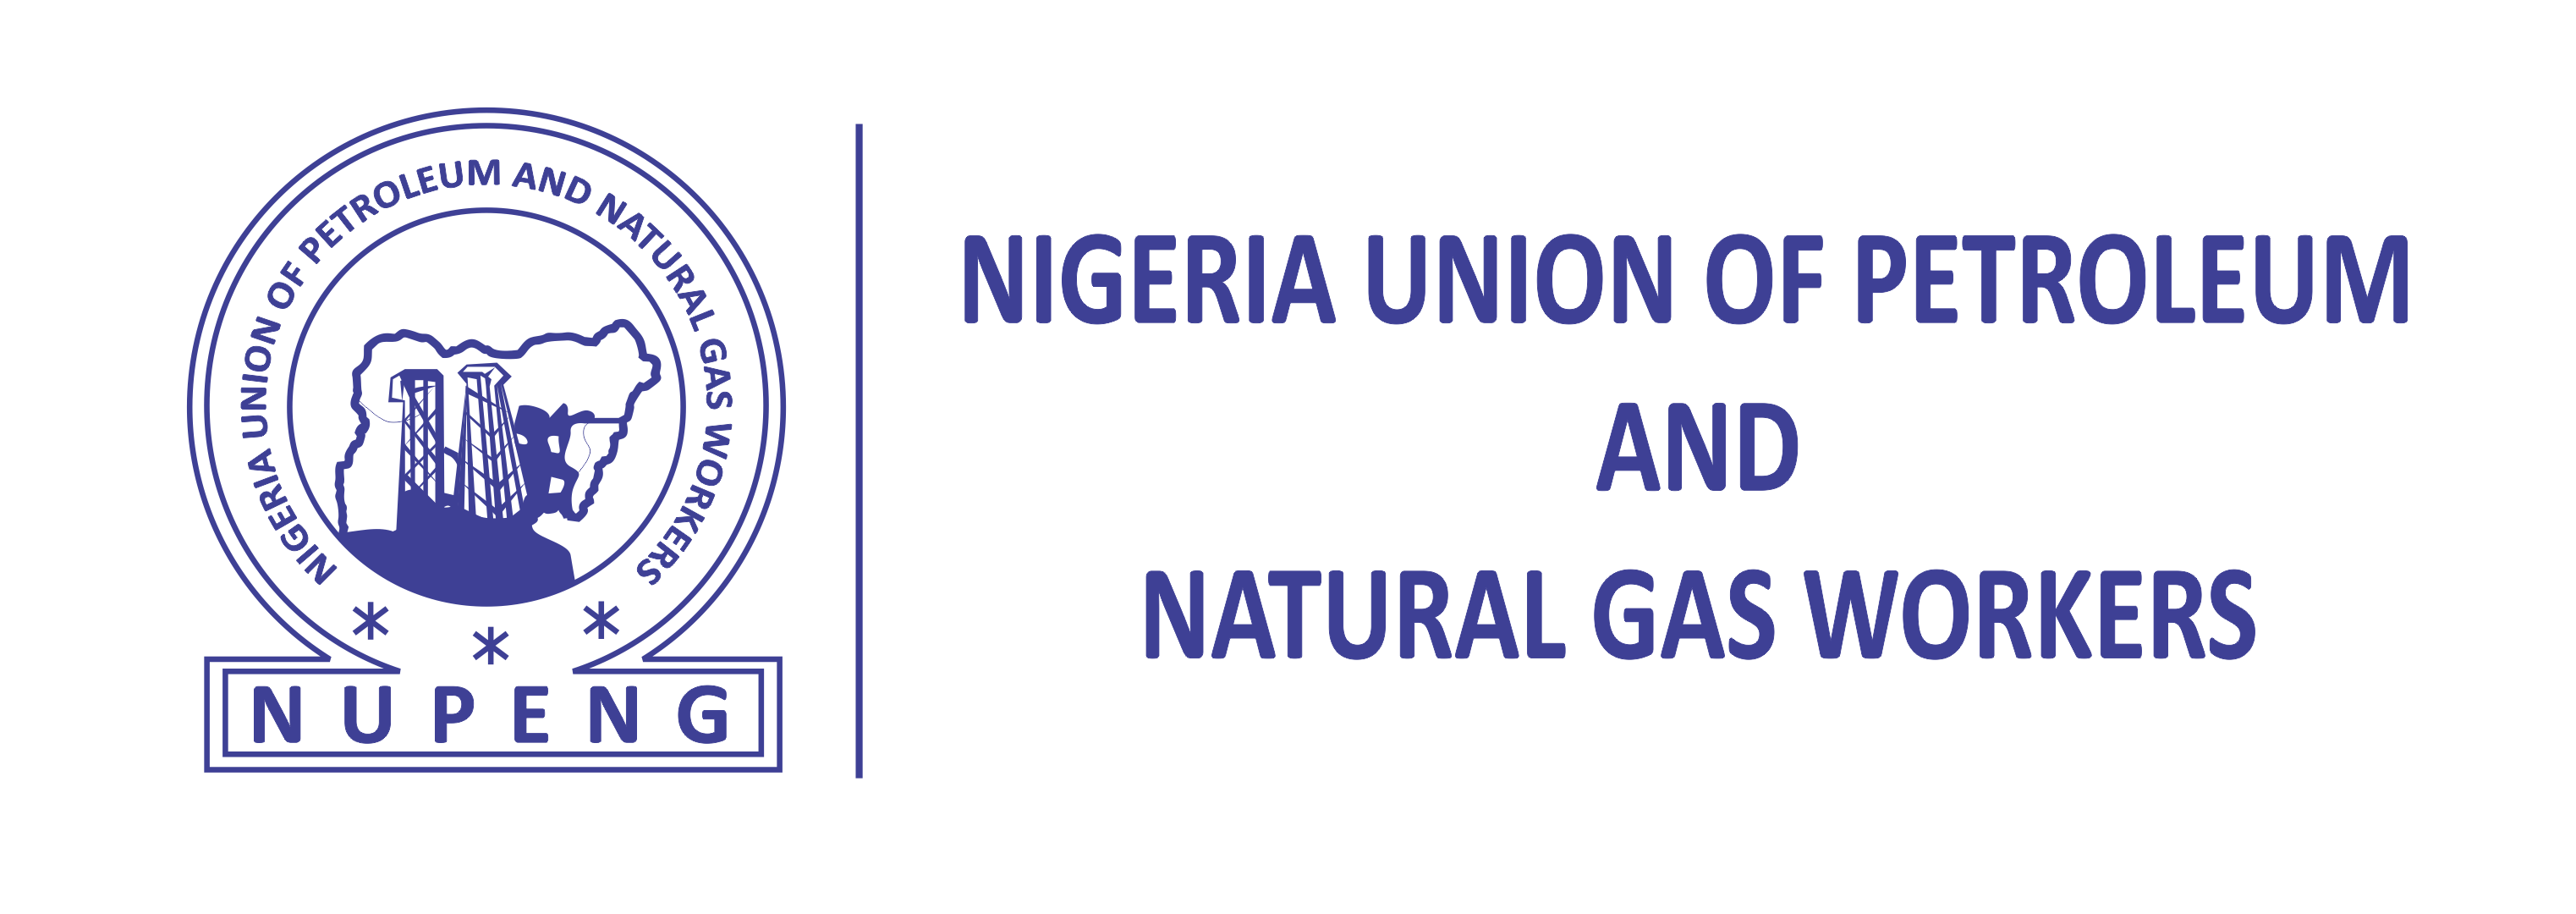 Nigeria Union Of Petroleum And Natural Gas Workers